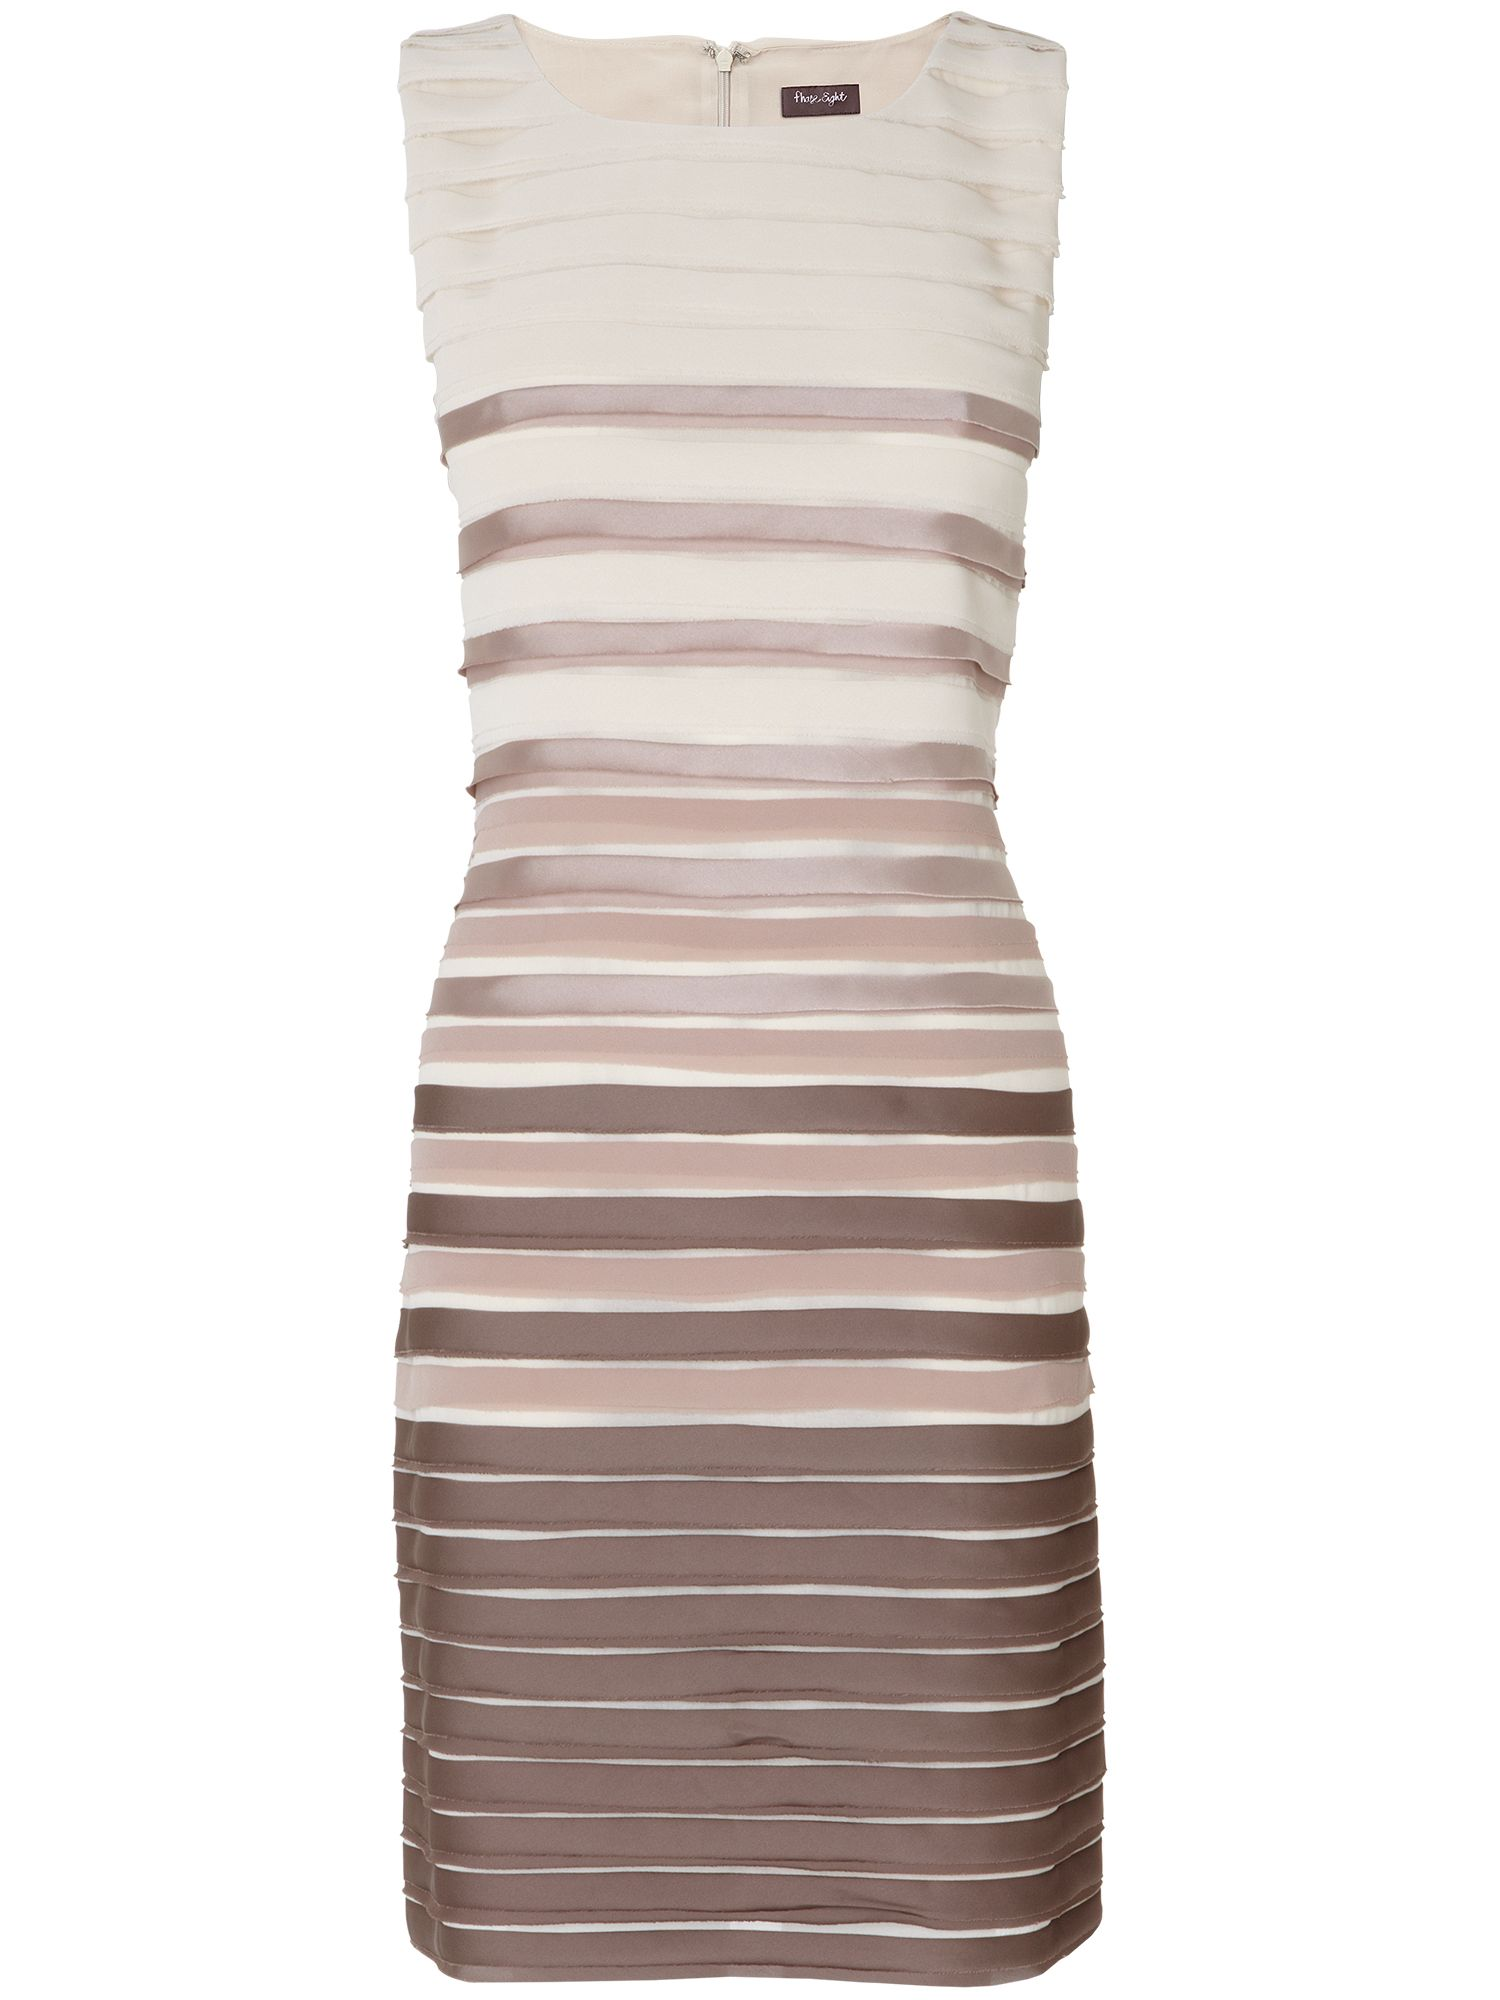 Sofia layered dress